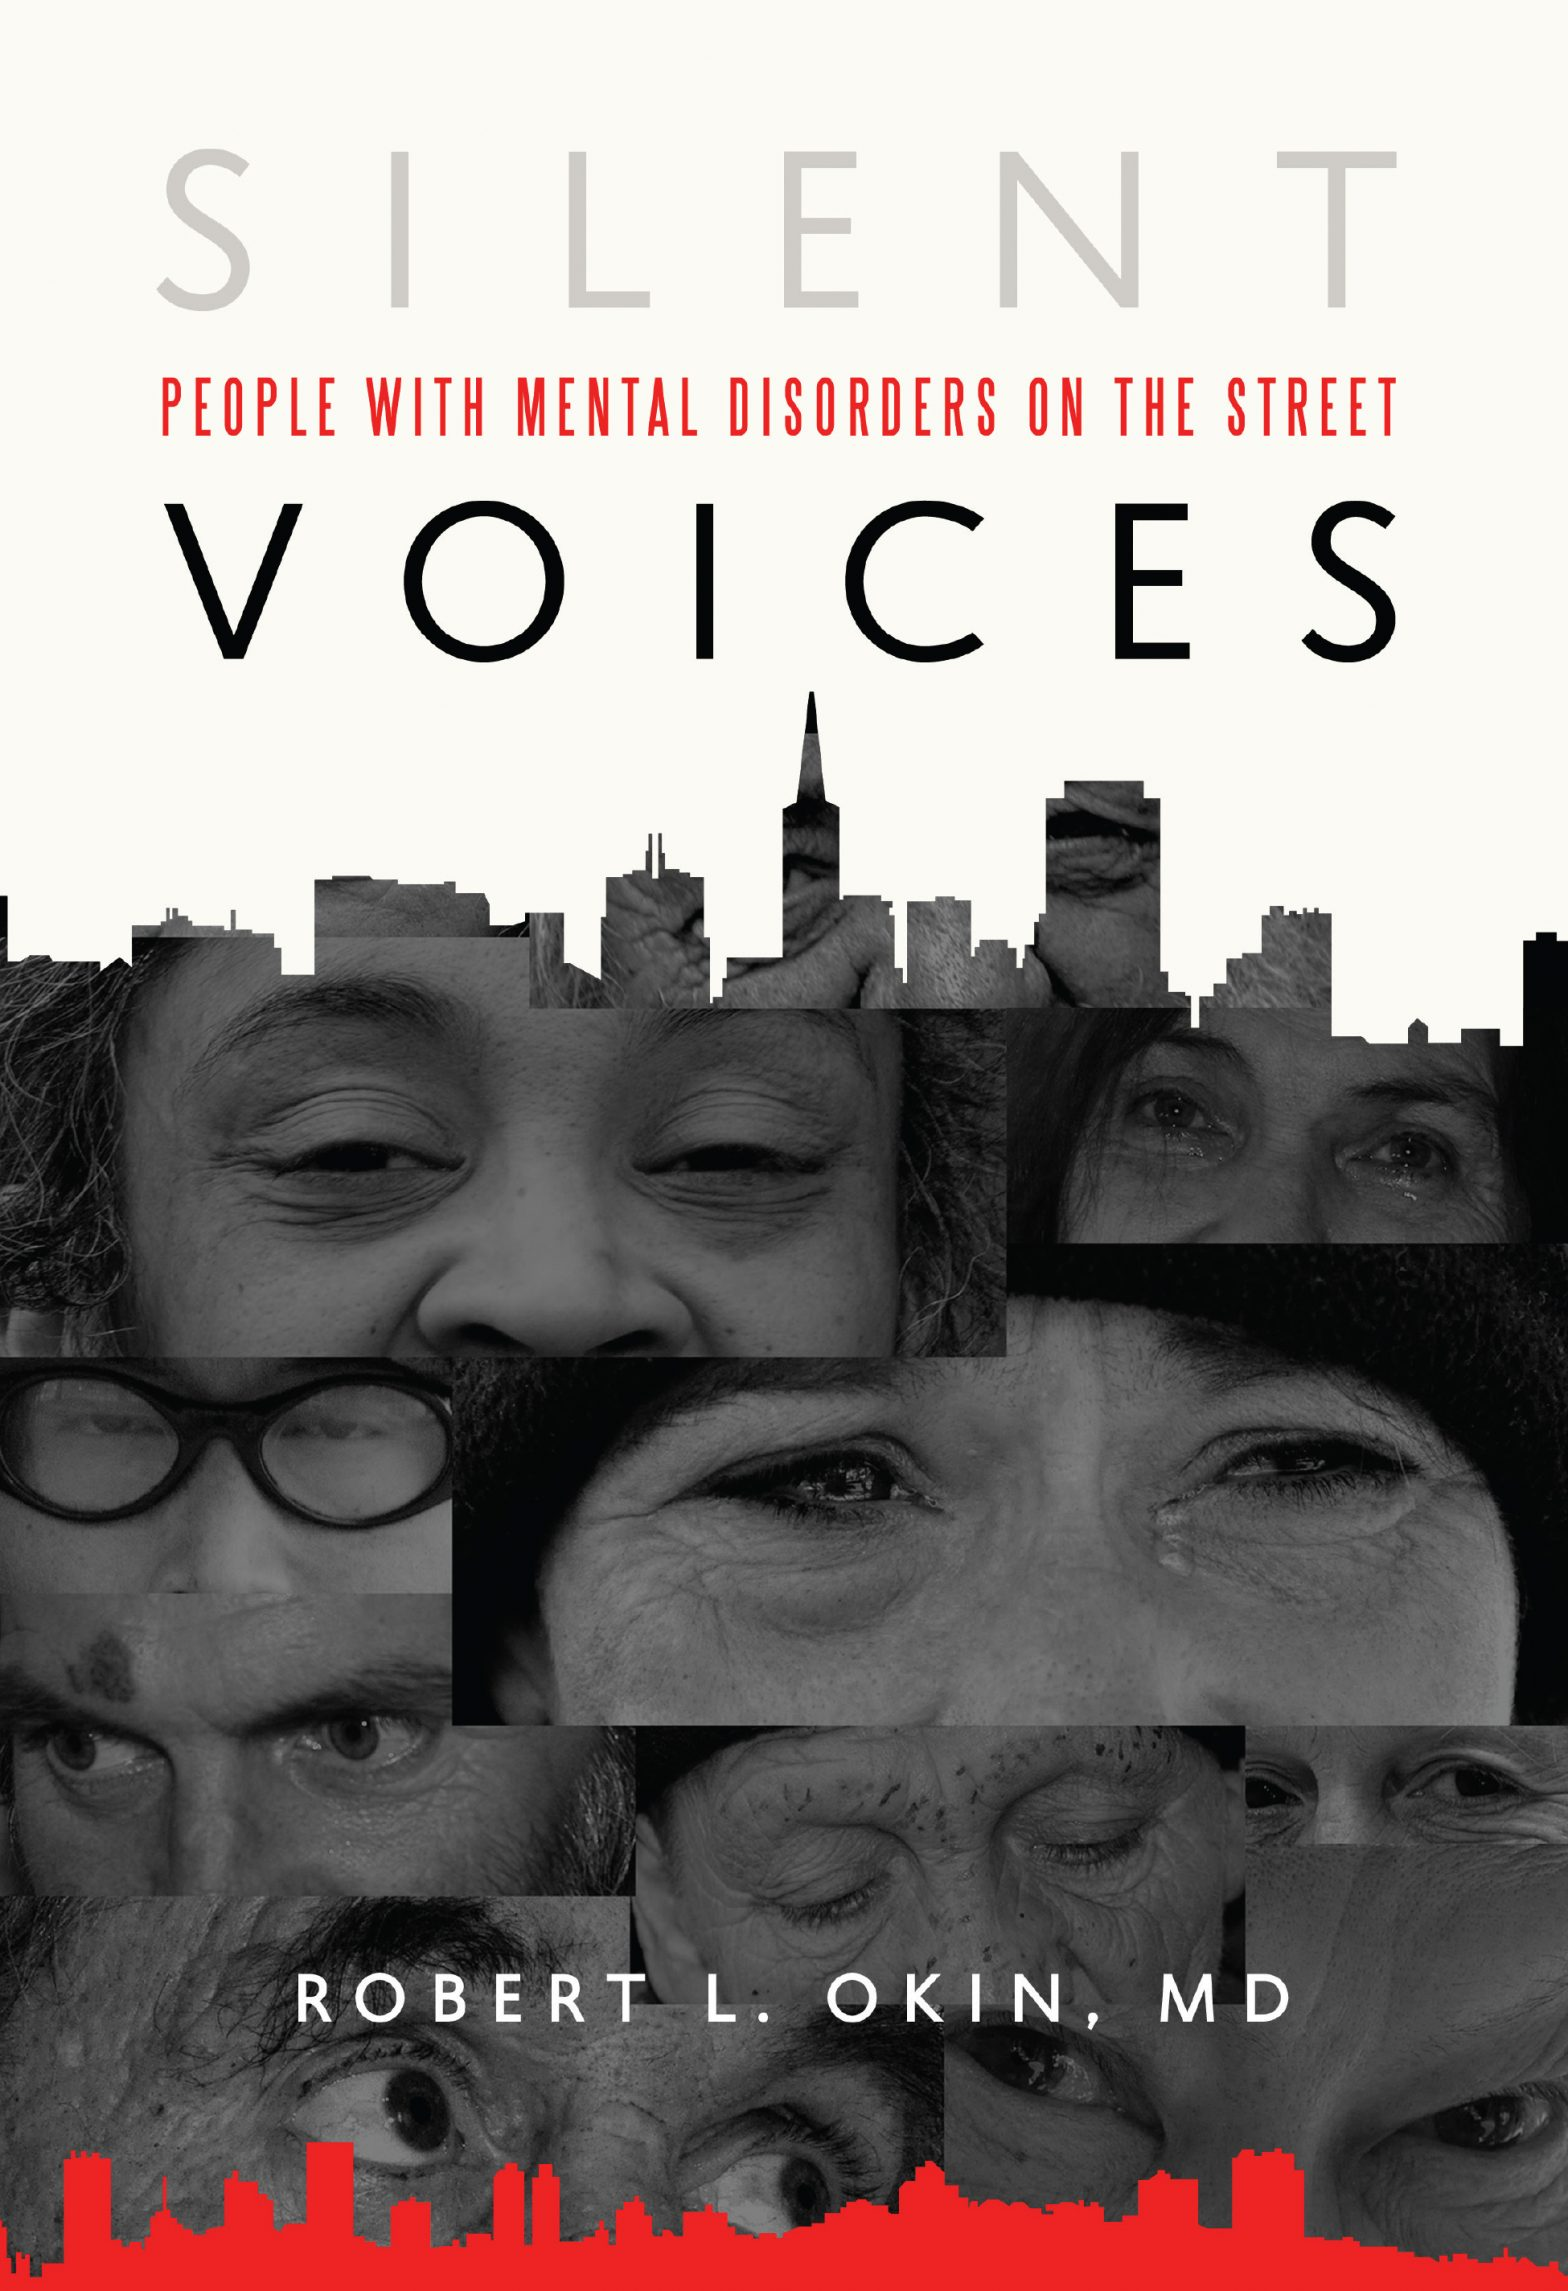 silentvoices_frontcover_5.5.14.jpg